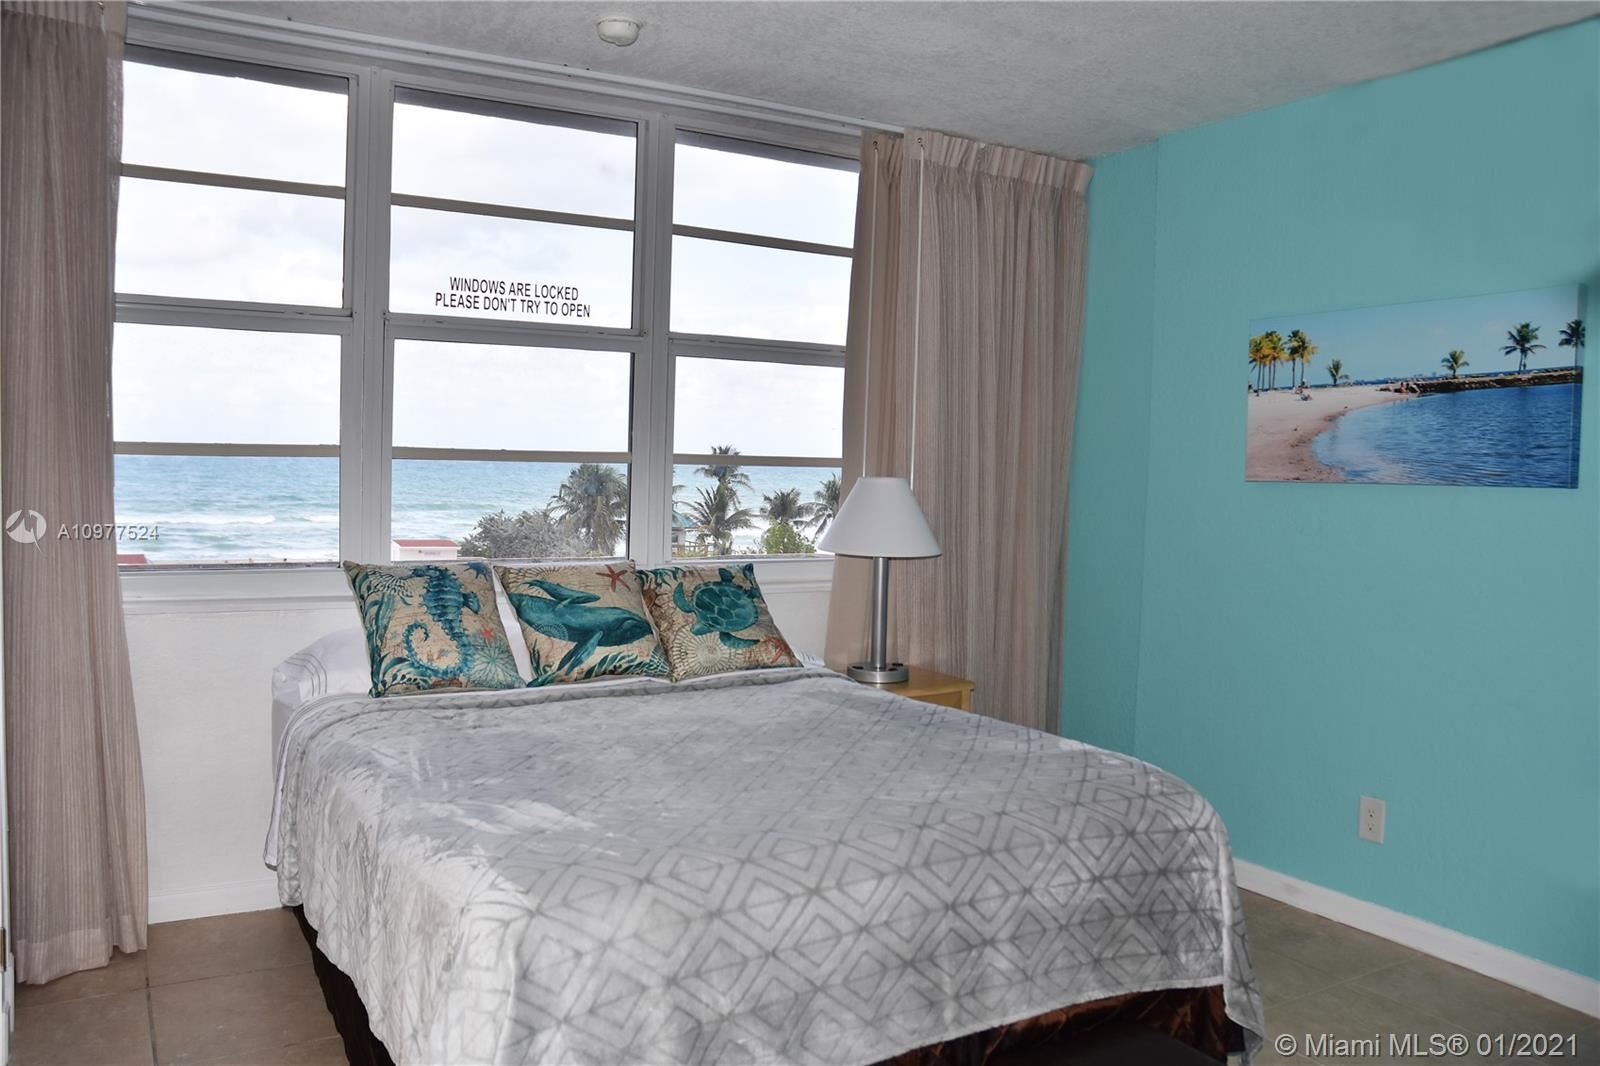 19201 Collins Ave #248, Sunny Isles, FL 33160 - #: A10977524